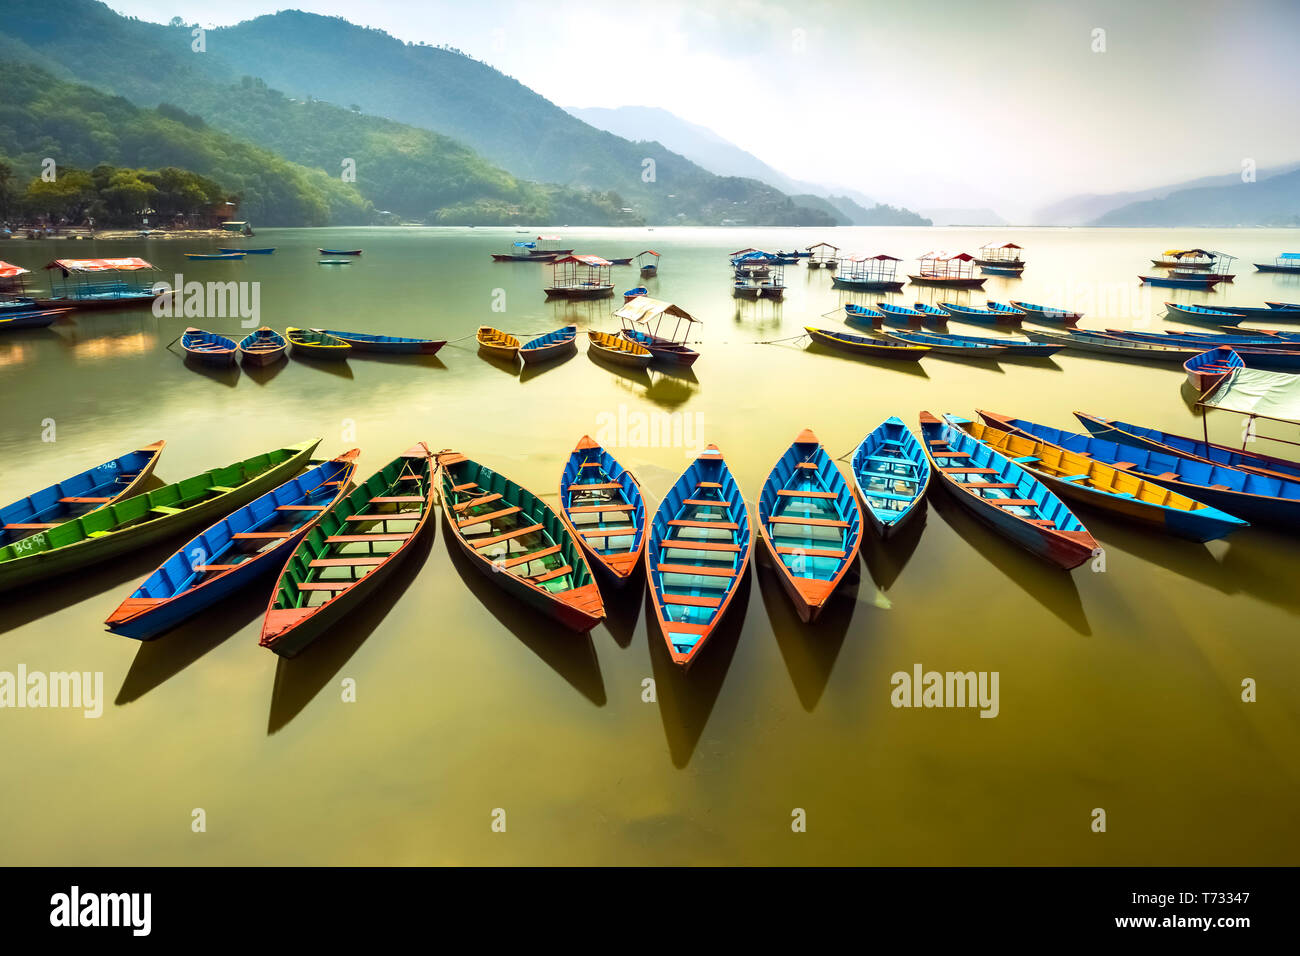 Amazing view on Phewa Lake. colorful boats queued at a midday.Province of Pokhara Nepal - Stock Image